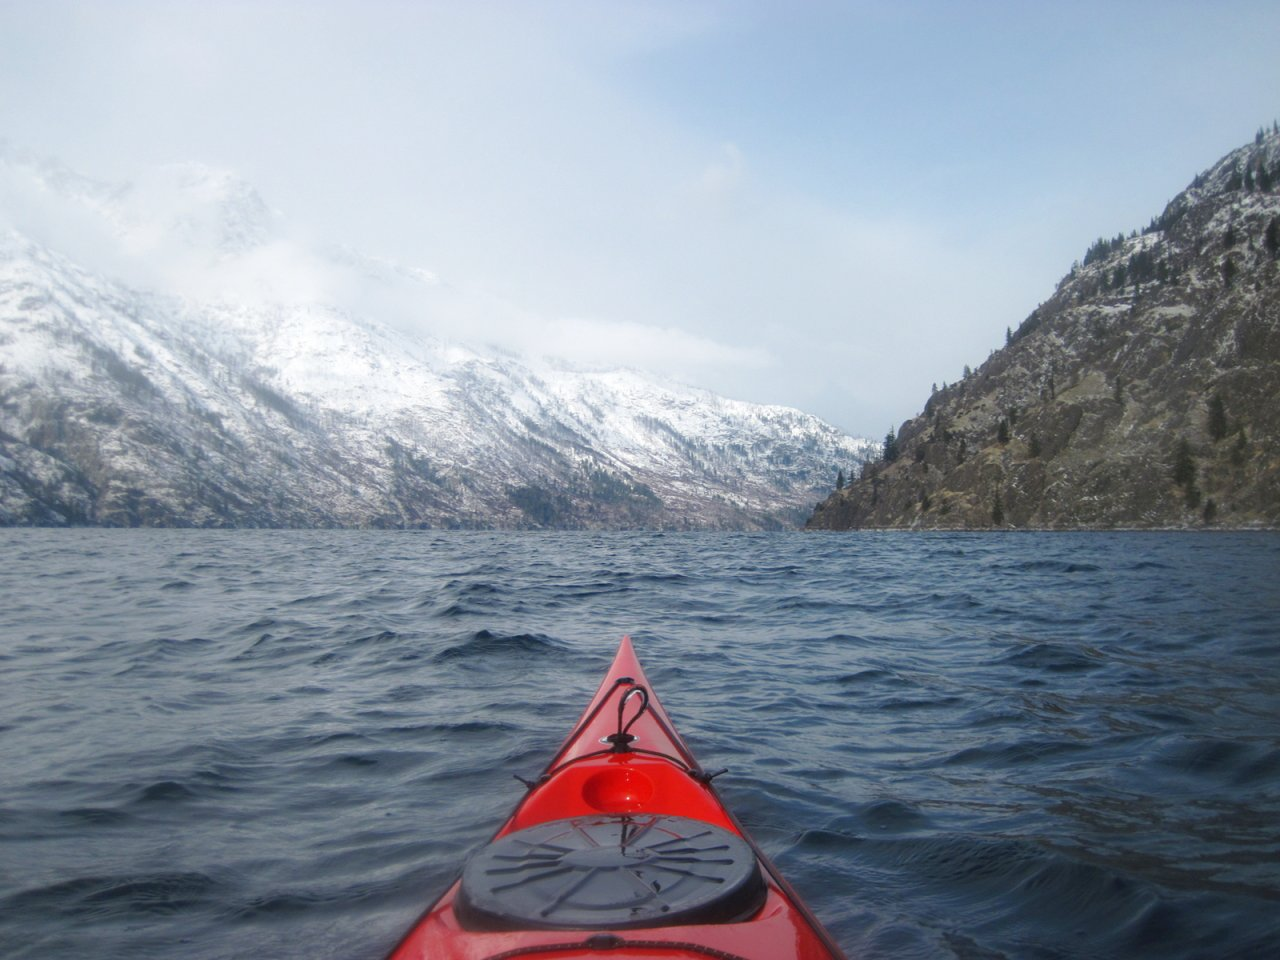 09 Clearing skies and buildng winds on Lake Chelan.jpg